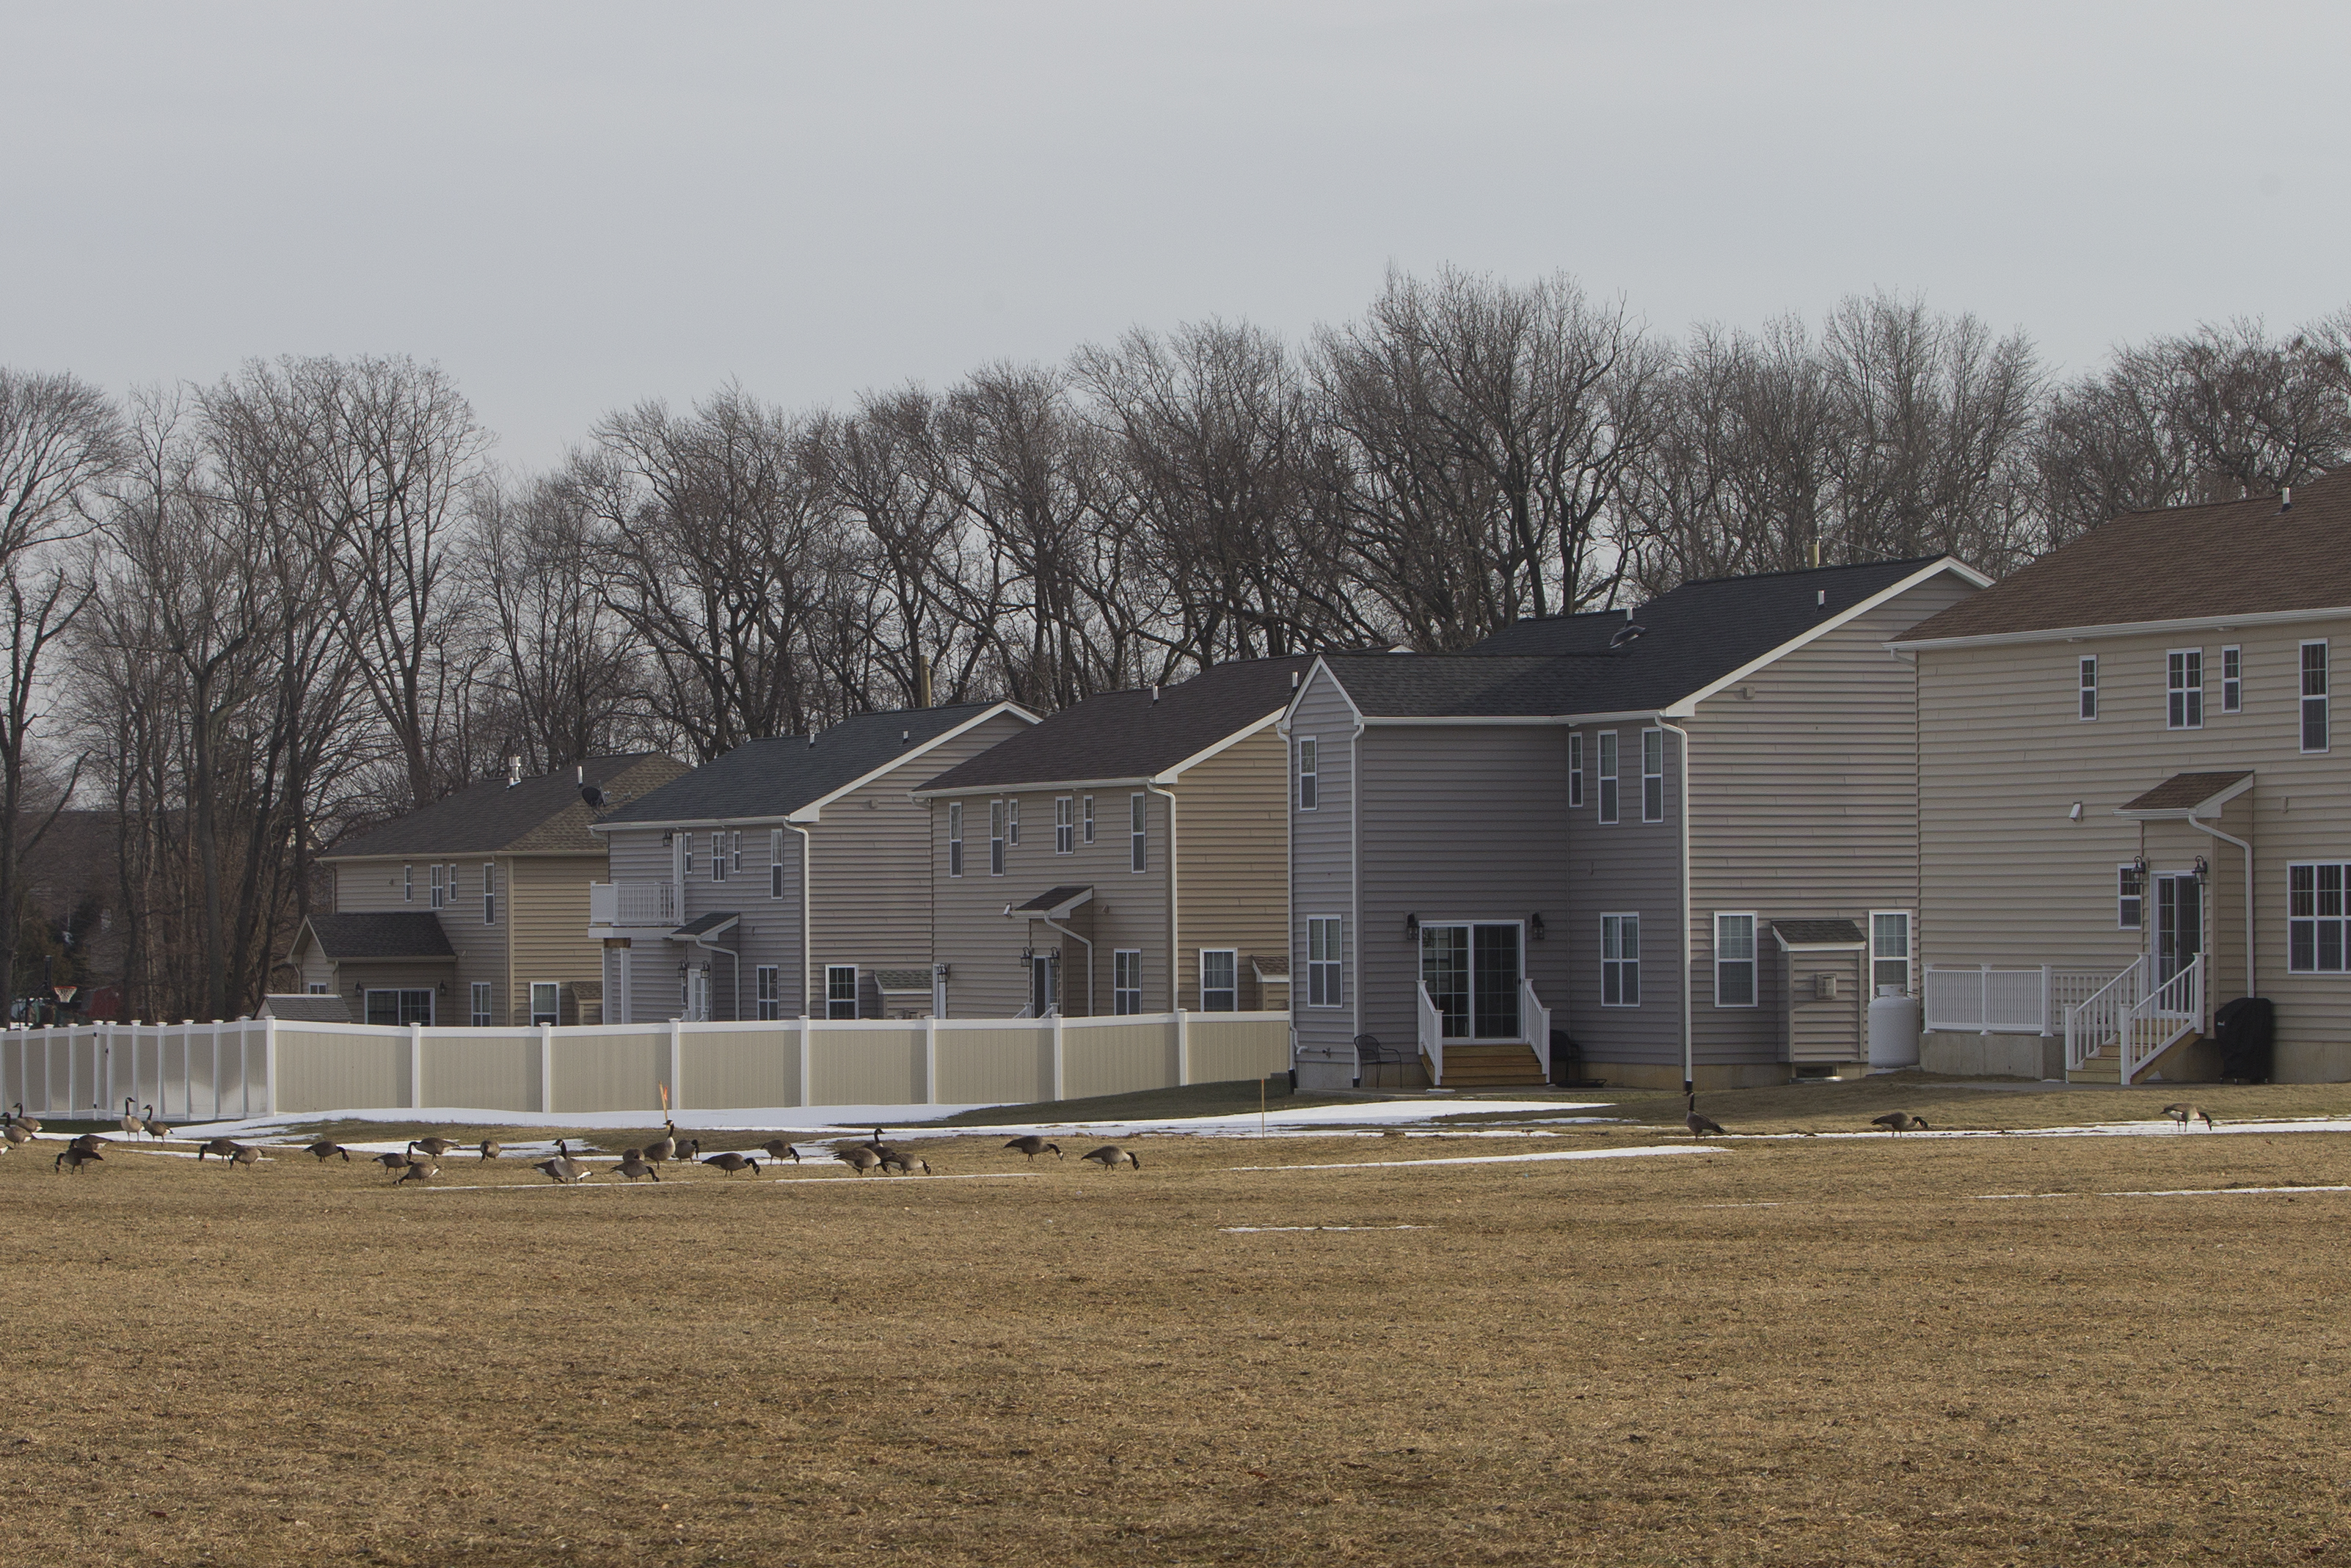 Homes are shown along Hulmeville Road in Bensalem, a community of diverse incomes, housing and people.